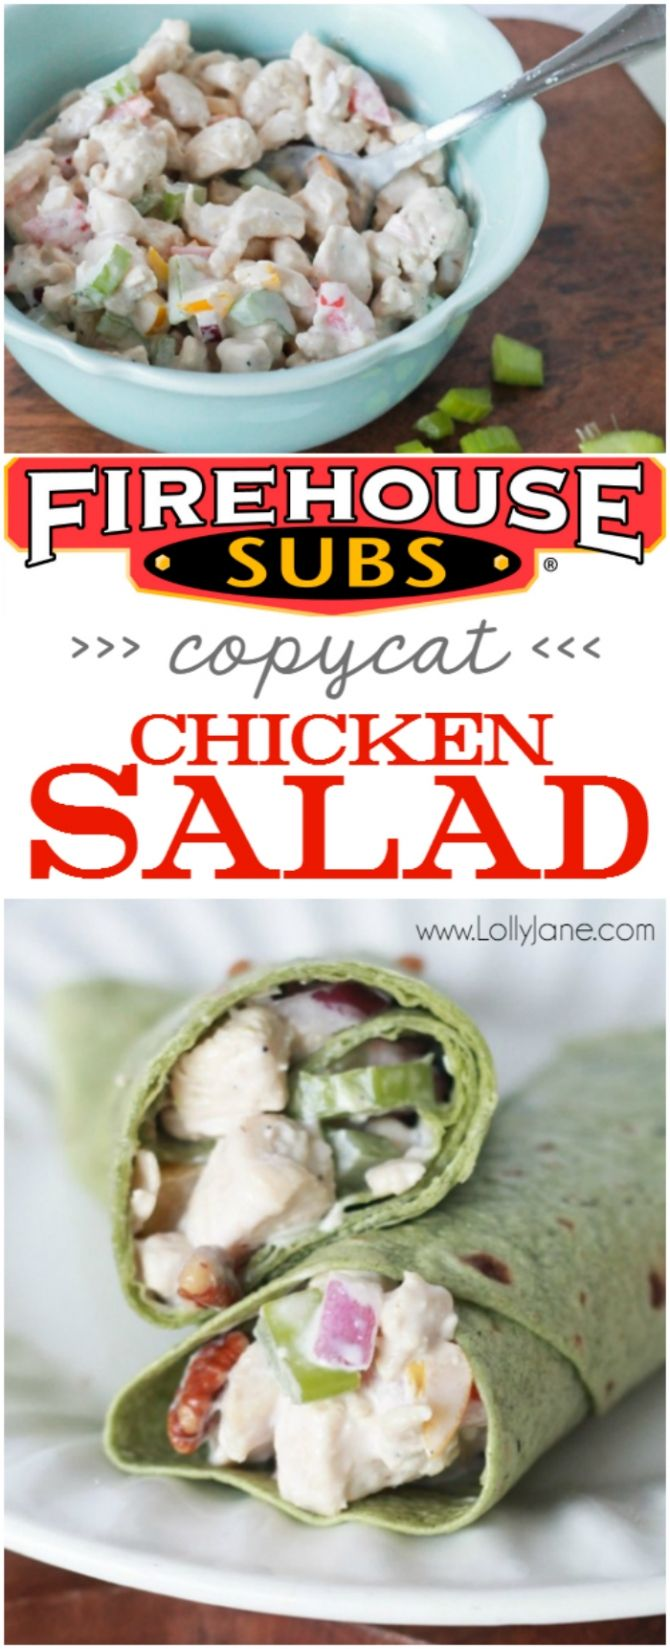 Firehouse Subs Copycat Chicken Salad, better than Mom used to make! Full of protein, veggies and low calories! Great lunch or even dinner recipe!